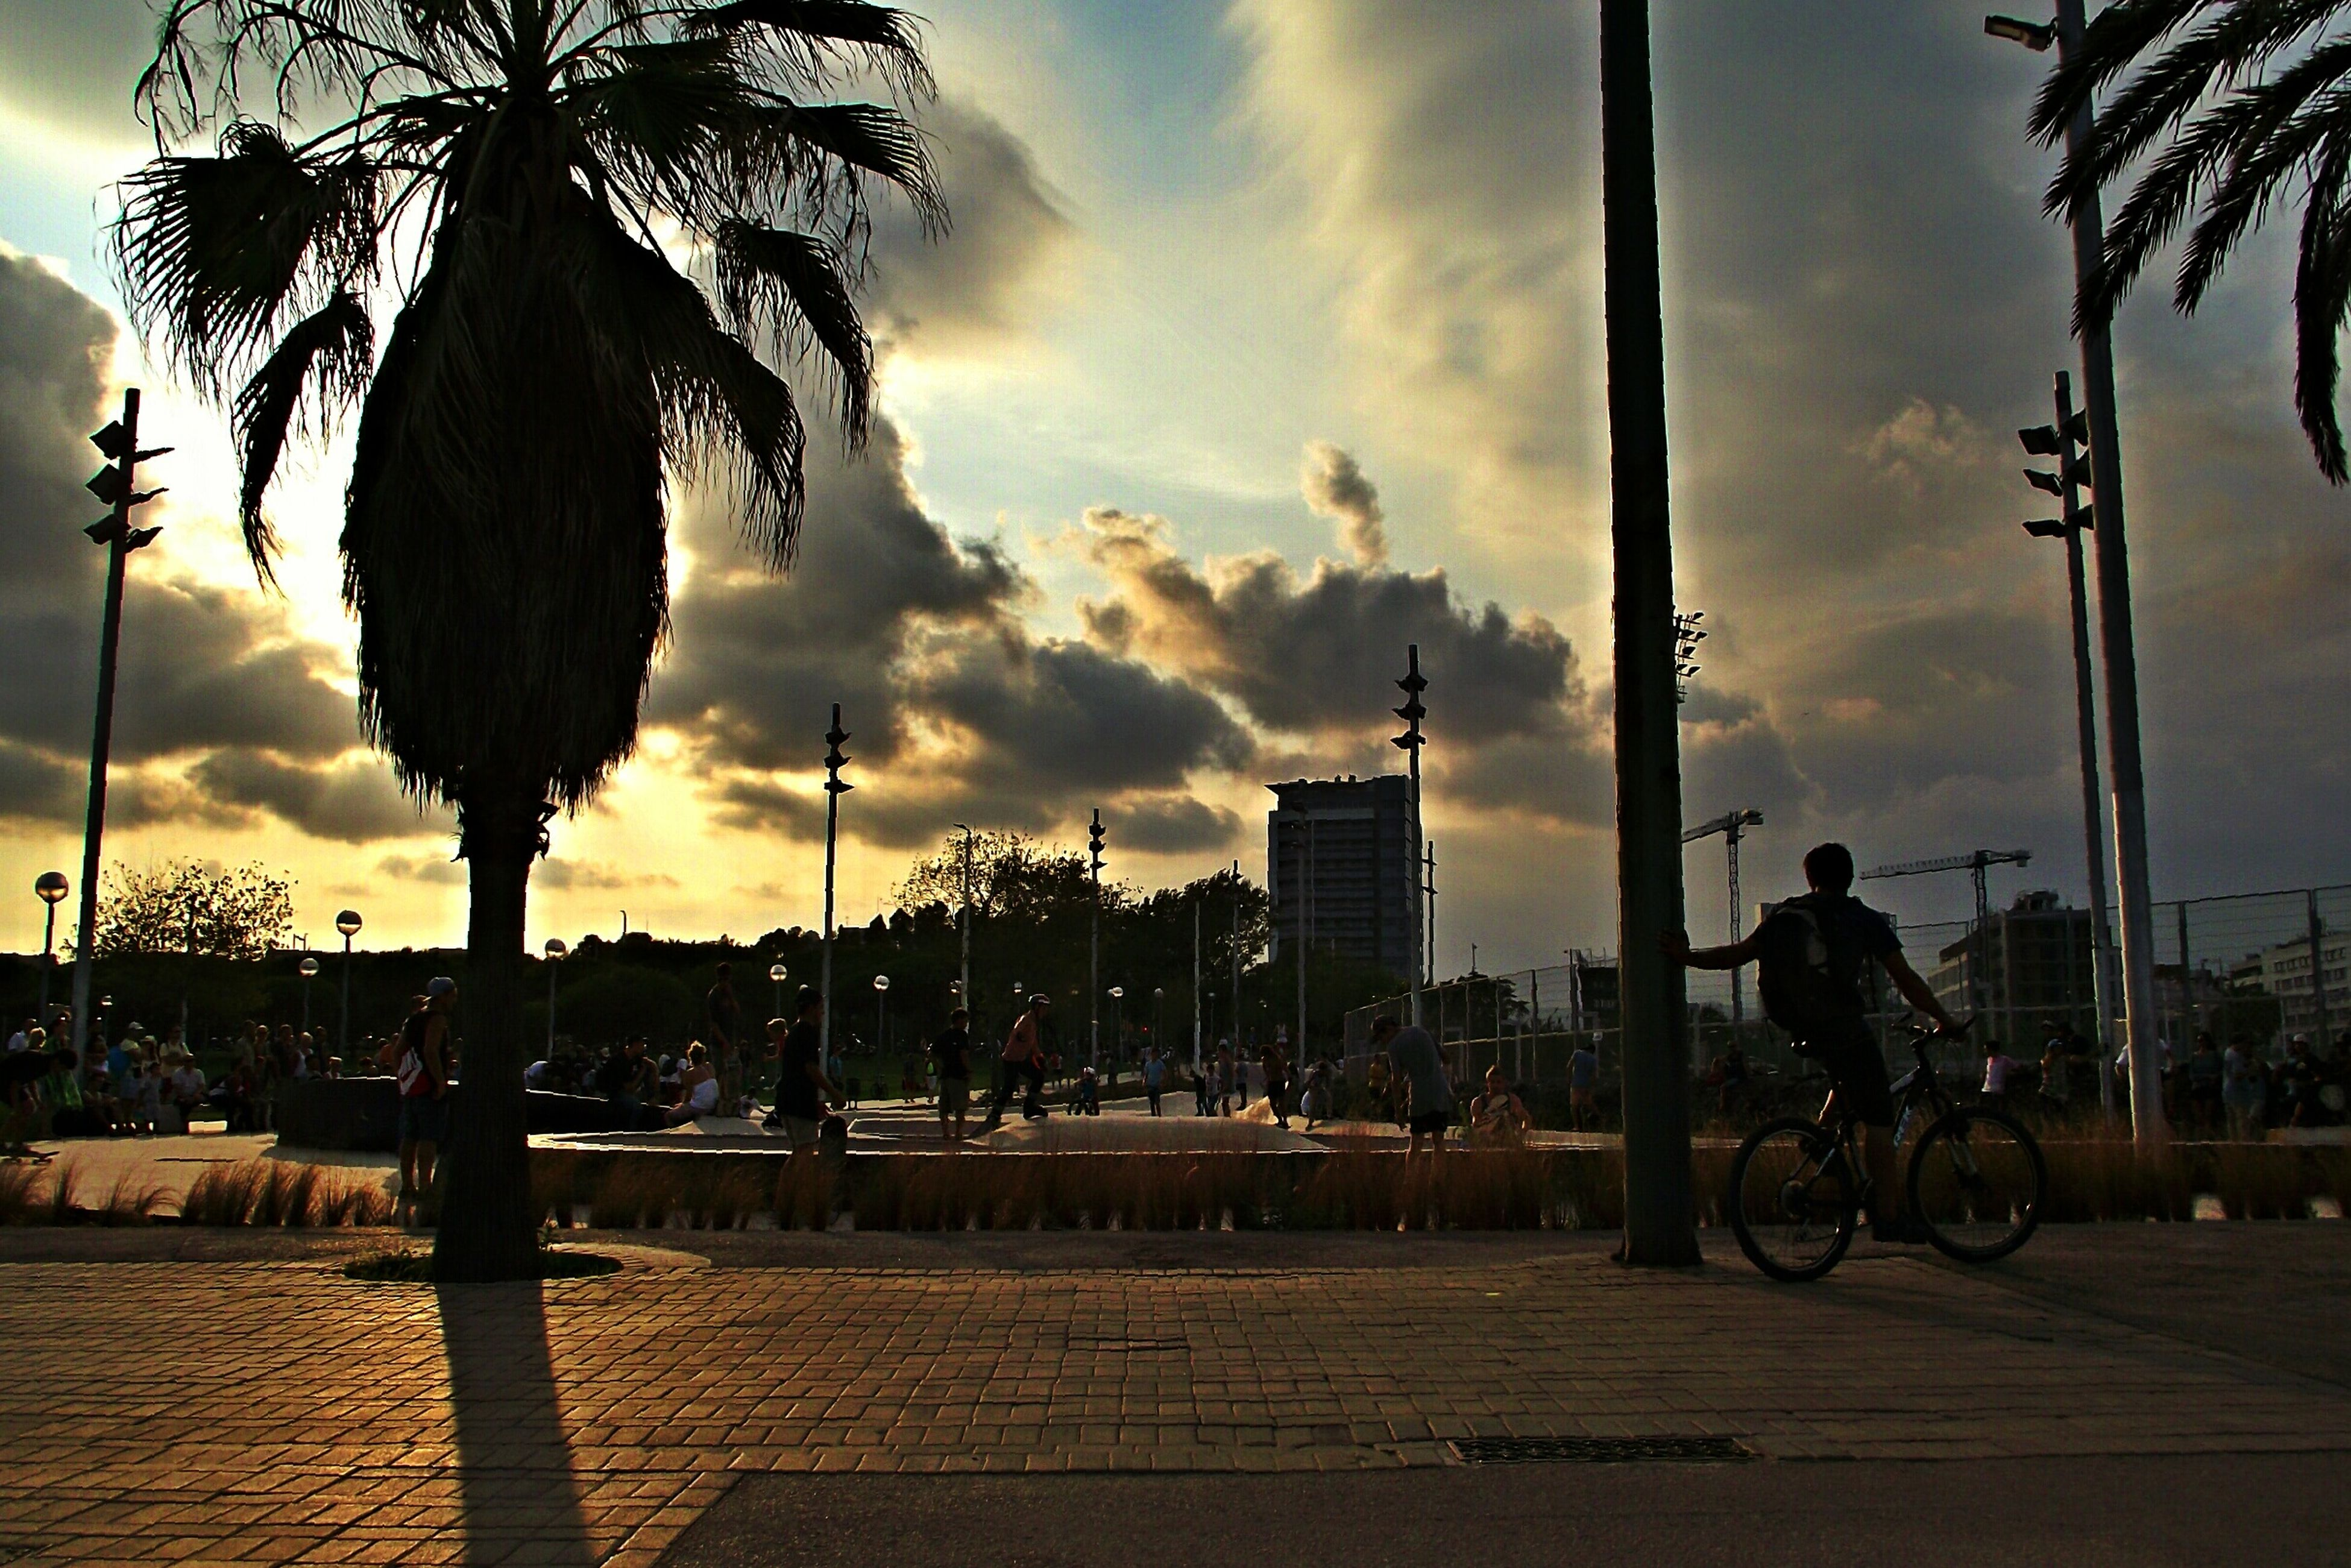 building exterior, city, architecture, sky, built structure, sunset, cloud - sky, street, street light, transportation, car, city life, tree, palm tree, land vehicle, mode of transport, road, cloud, incidental people, cityscape